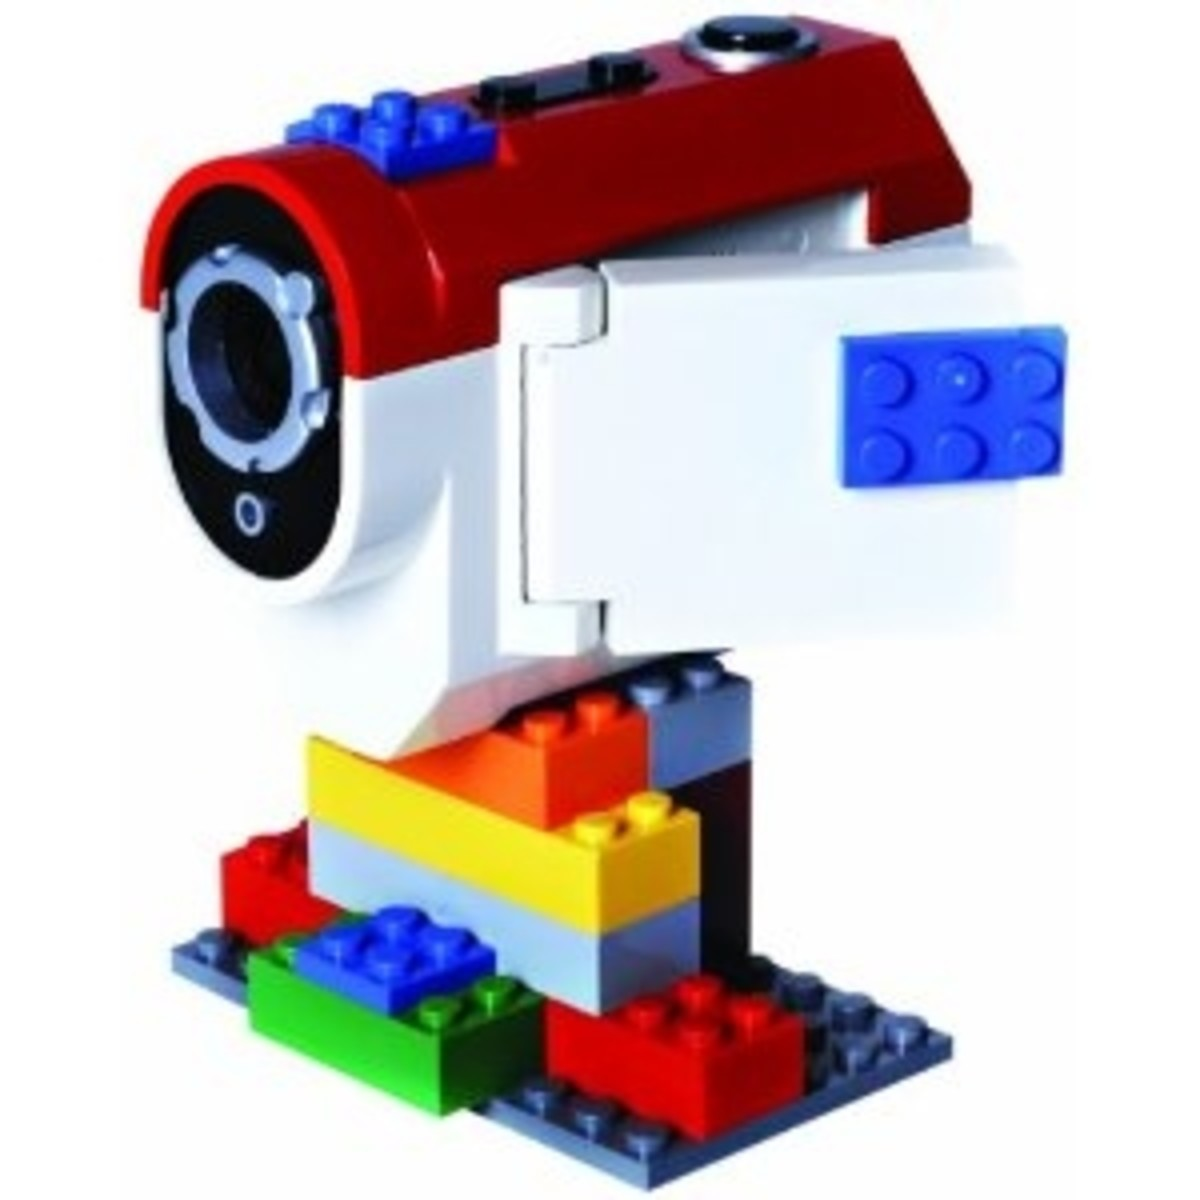 The Lego Video Camera, like the digital camera above has lots of places where lego bricks can be added.